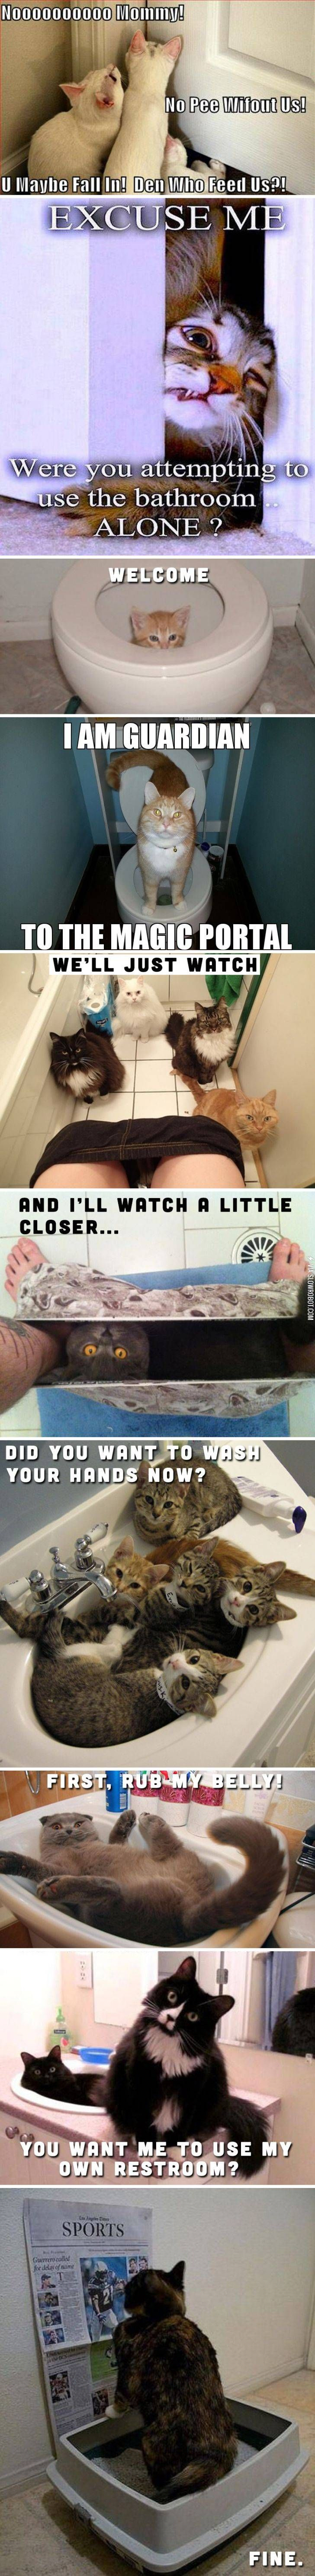 Cats+and+bathrooms. Anyone who has ever had a cat can relate to this. I know I can!